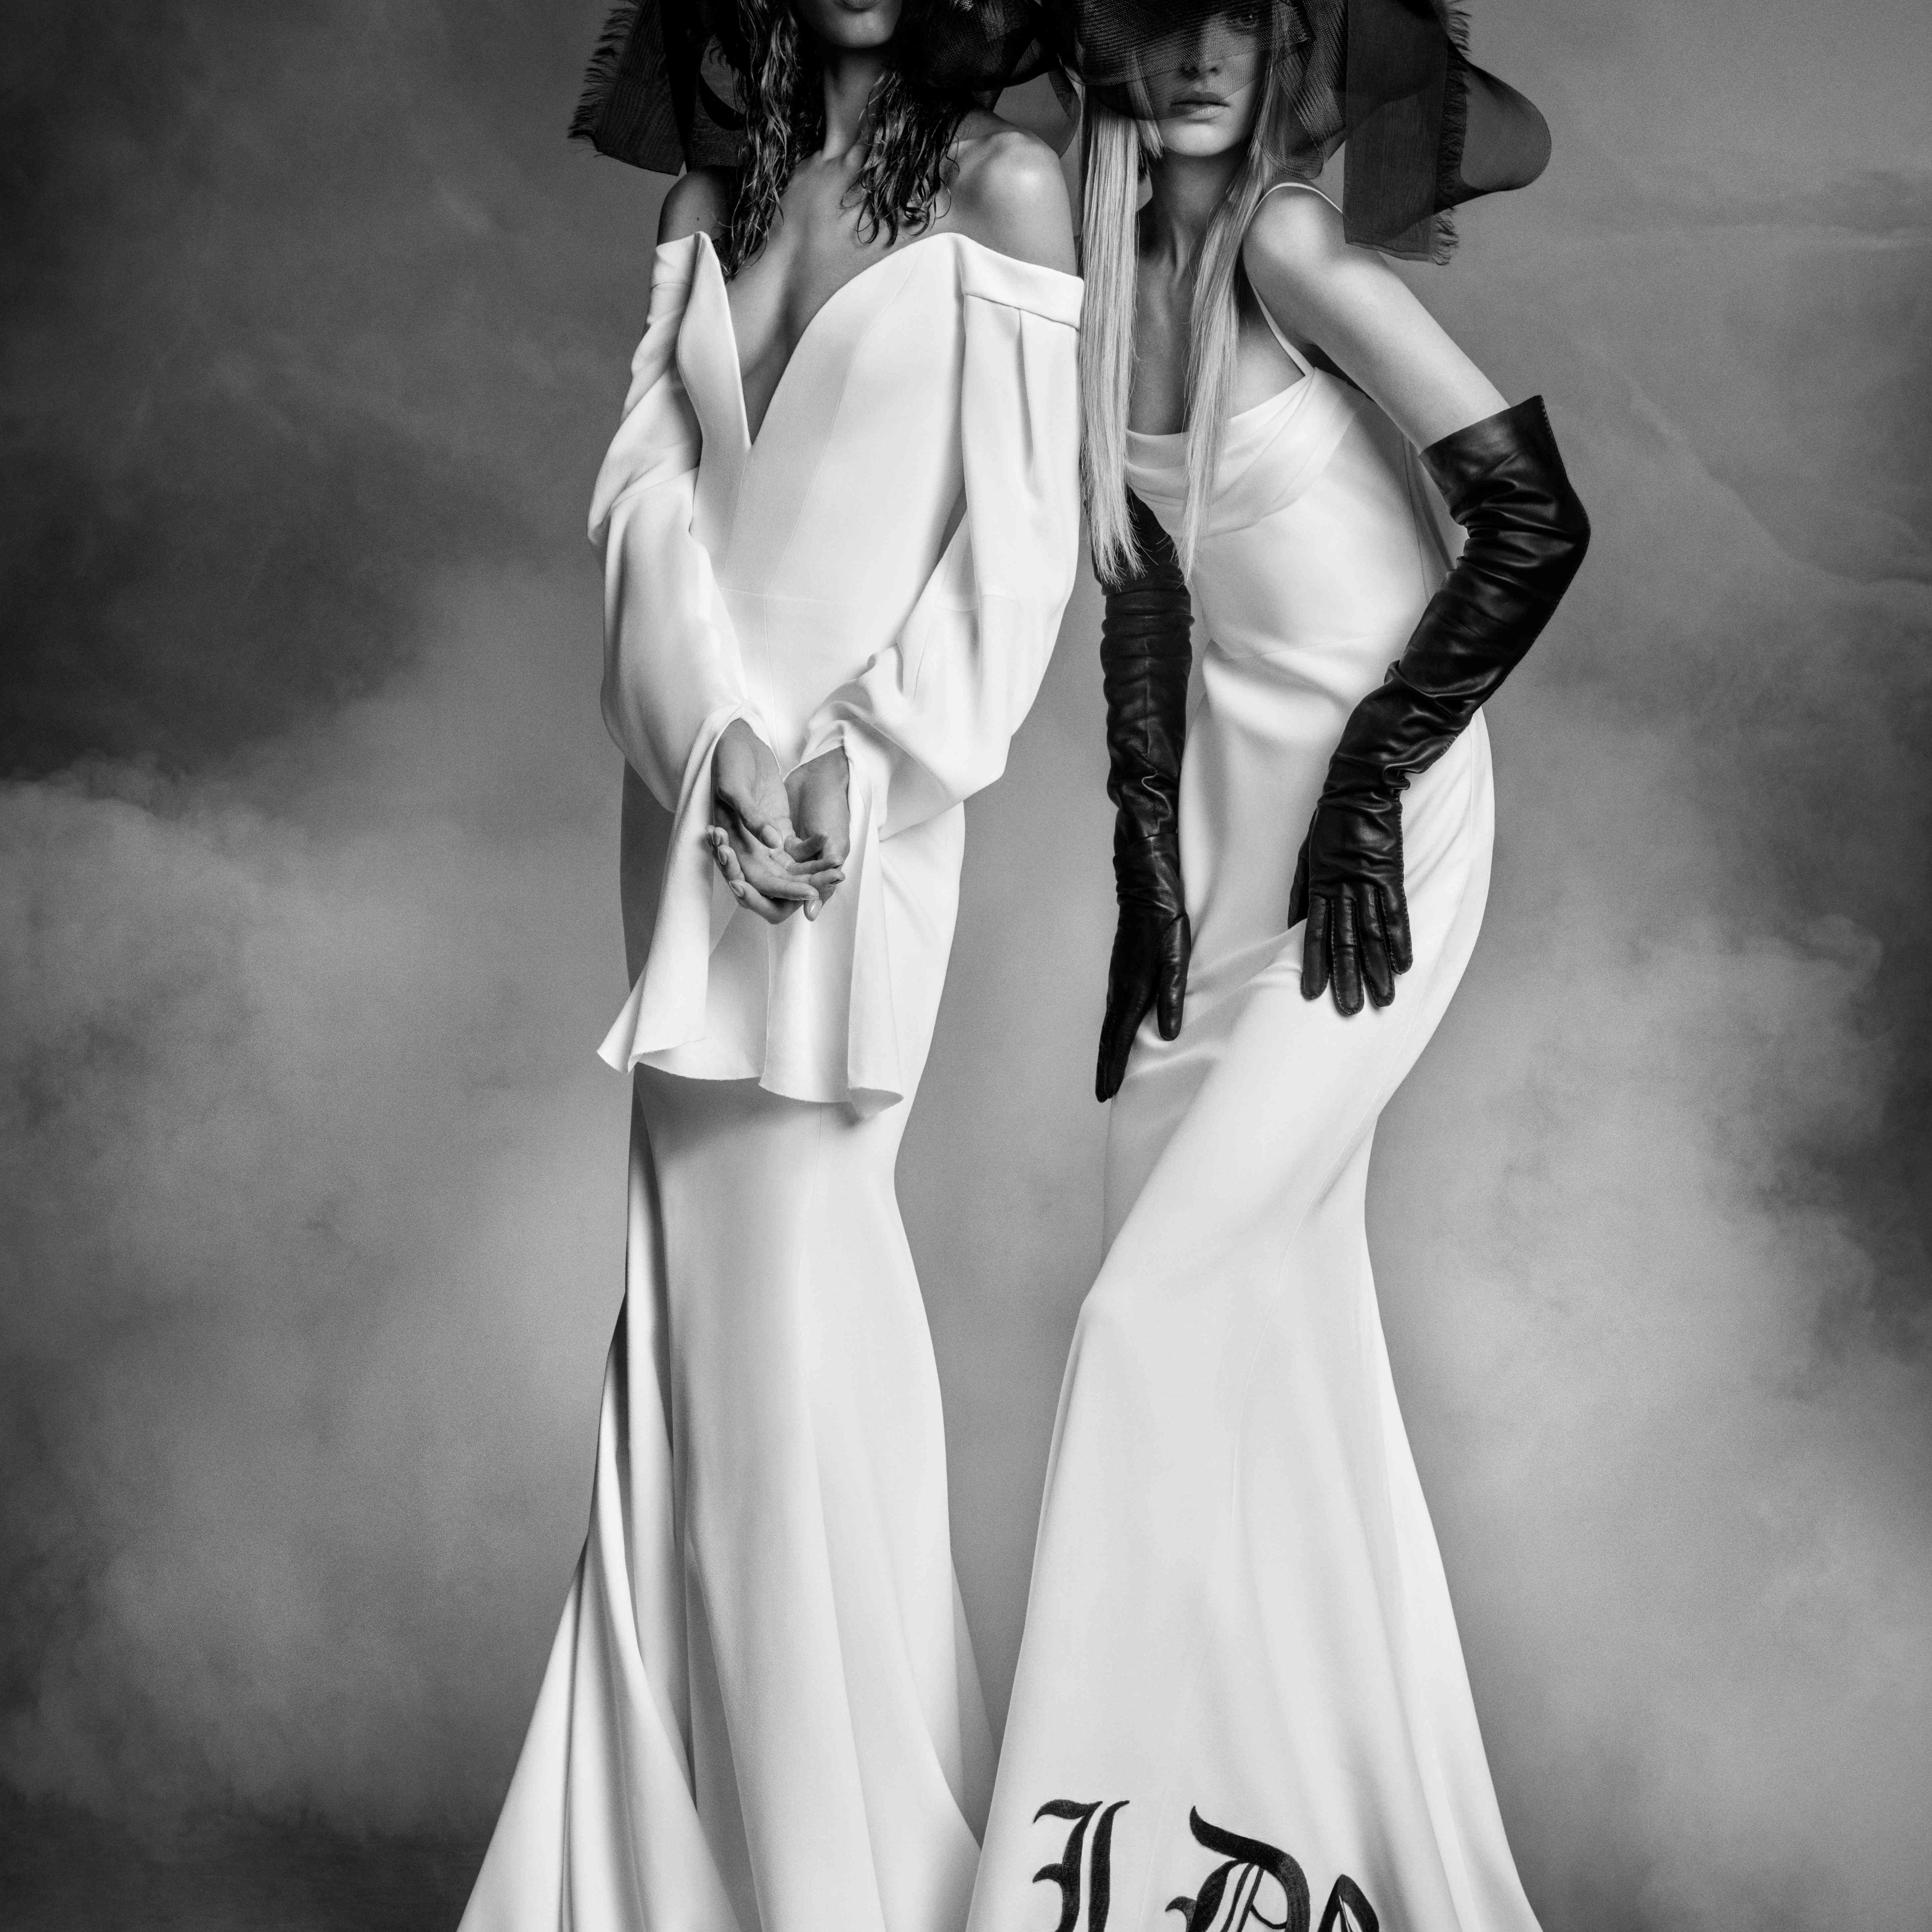 Two models in long white wedding gowns with black headpieces